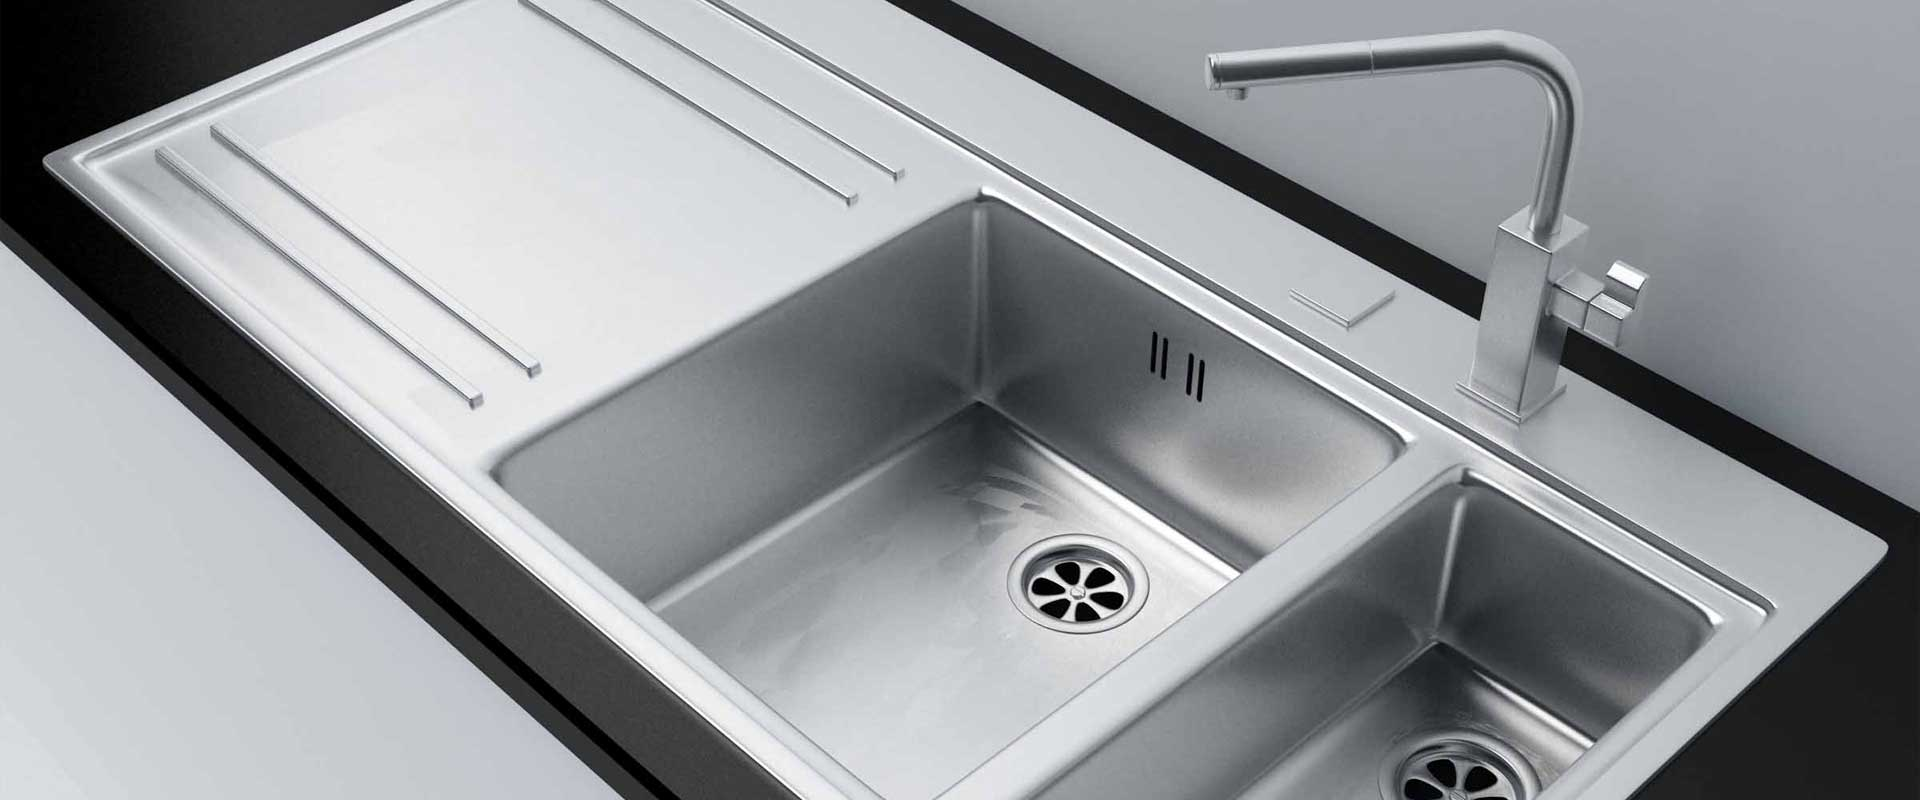 how to clean porcelain kitchen sink